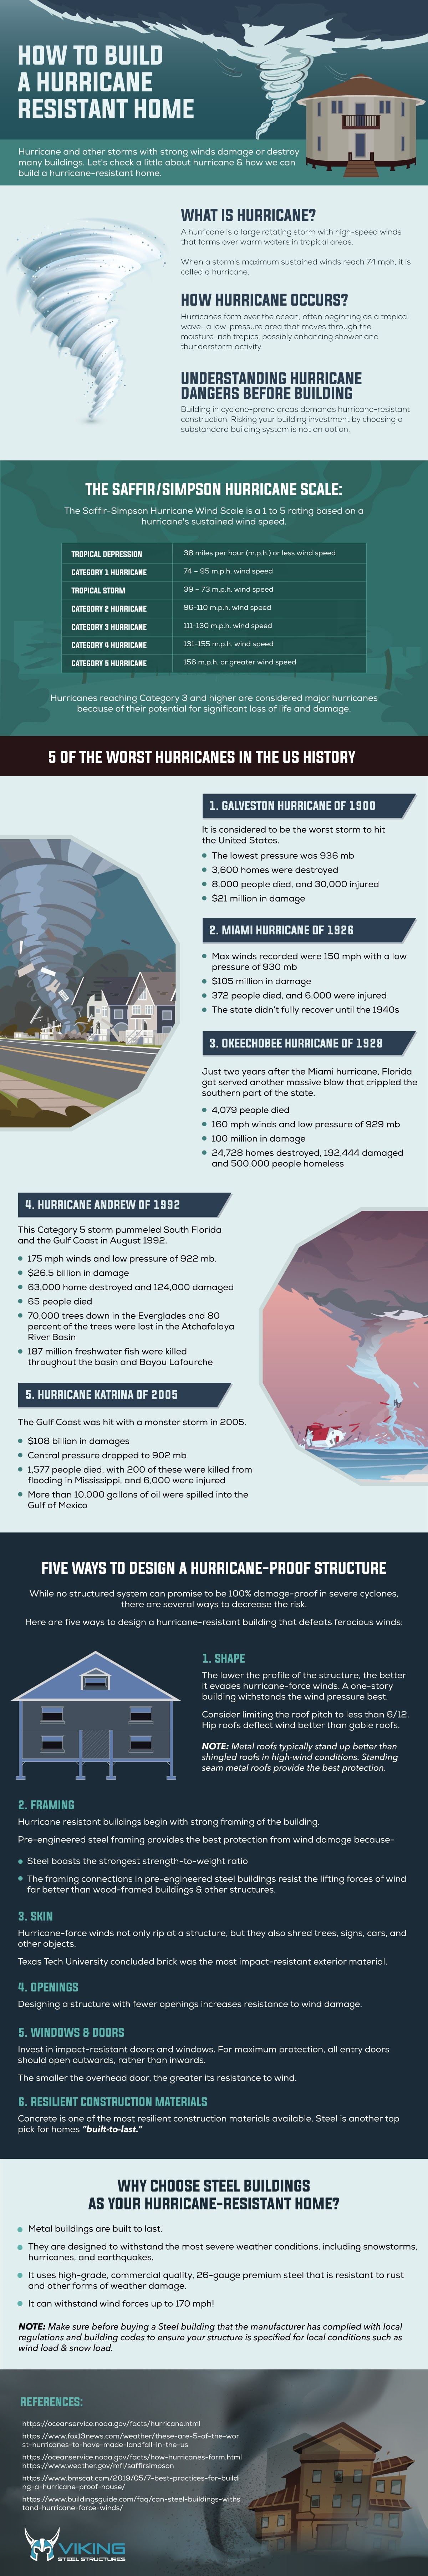 How to Build a Hurricane Resistant Home #Infographic